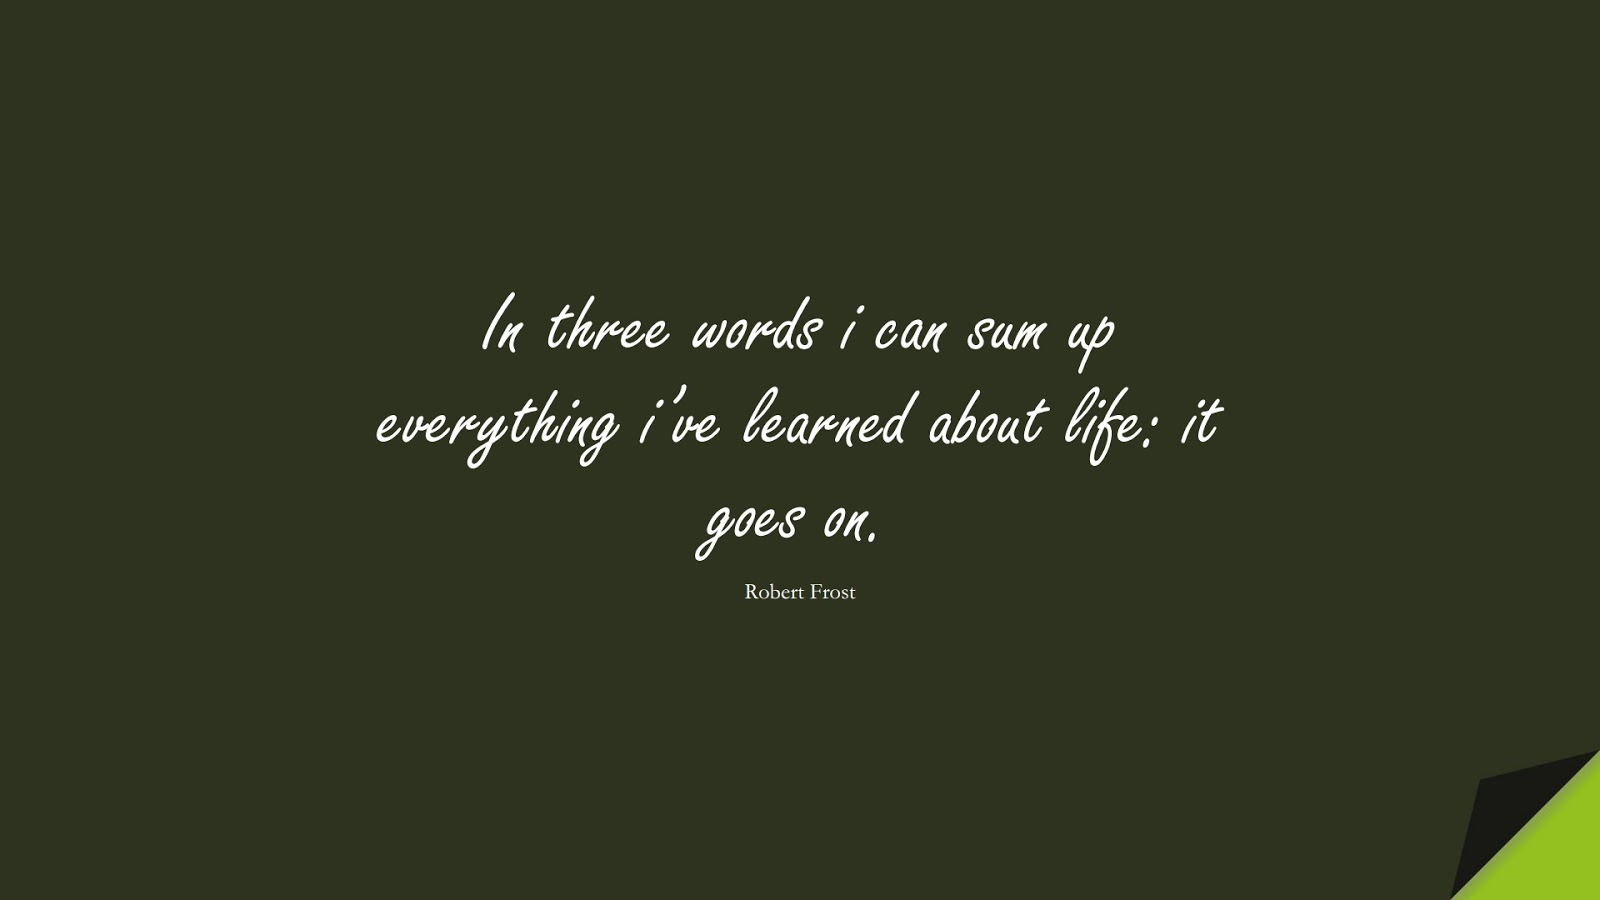 In three words i can sum up everything i've learned about life: it goes on. (Robert Frost);  #ShortQuotes